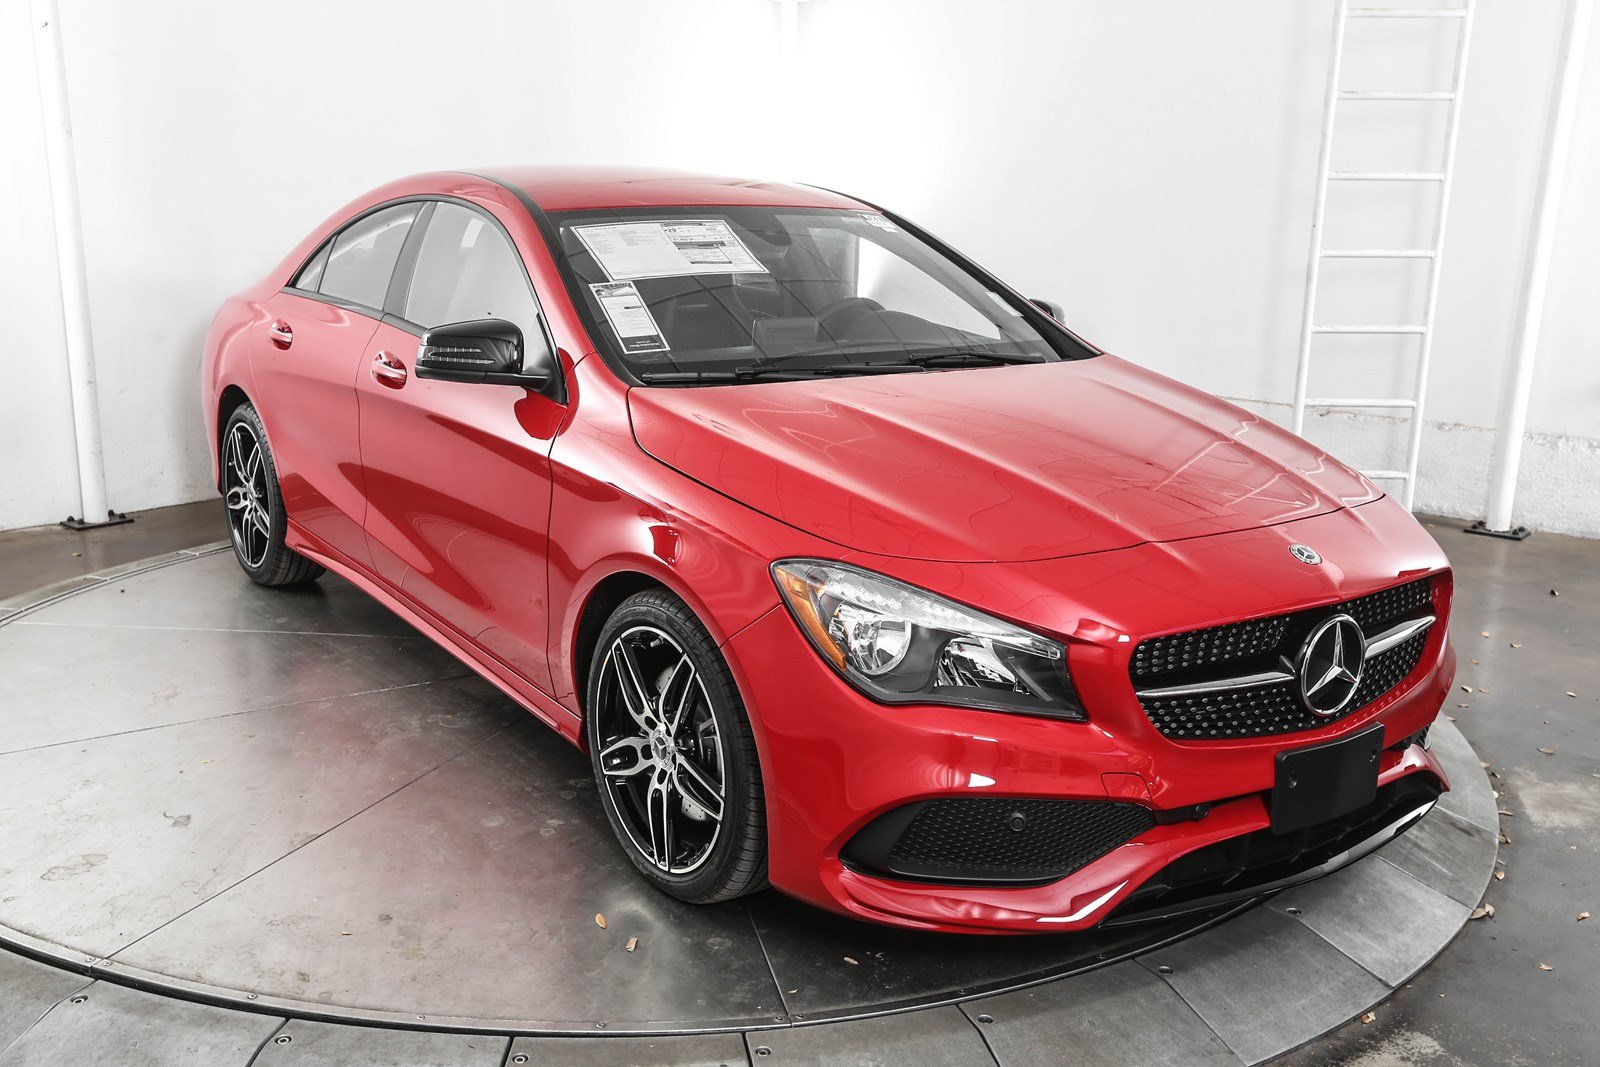 New 2018 mercedes benz cla cla 250 coupe in austin m58387 for Mercedes benz cla 250 msrp